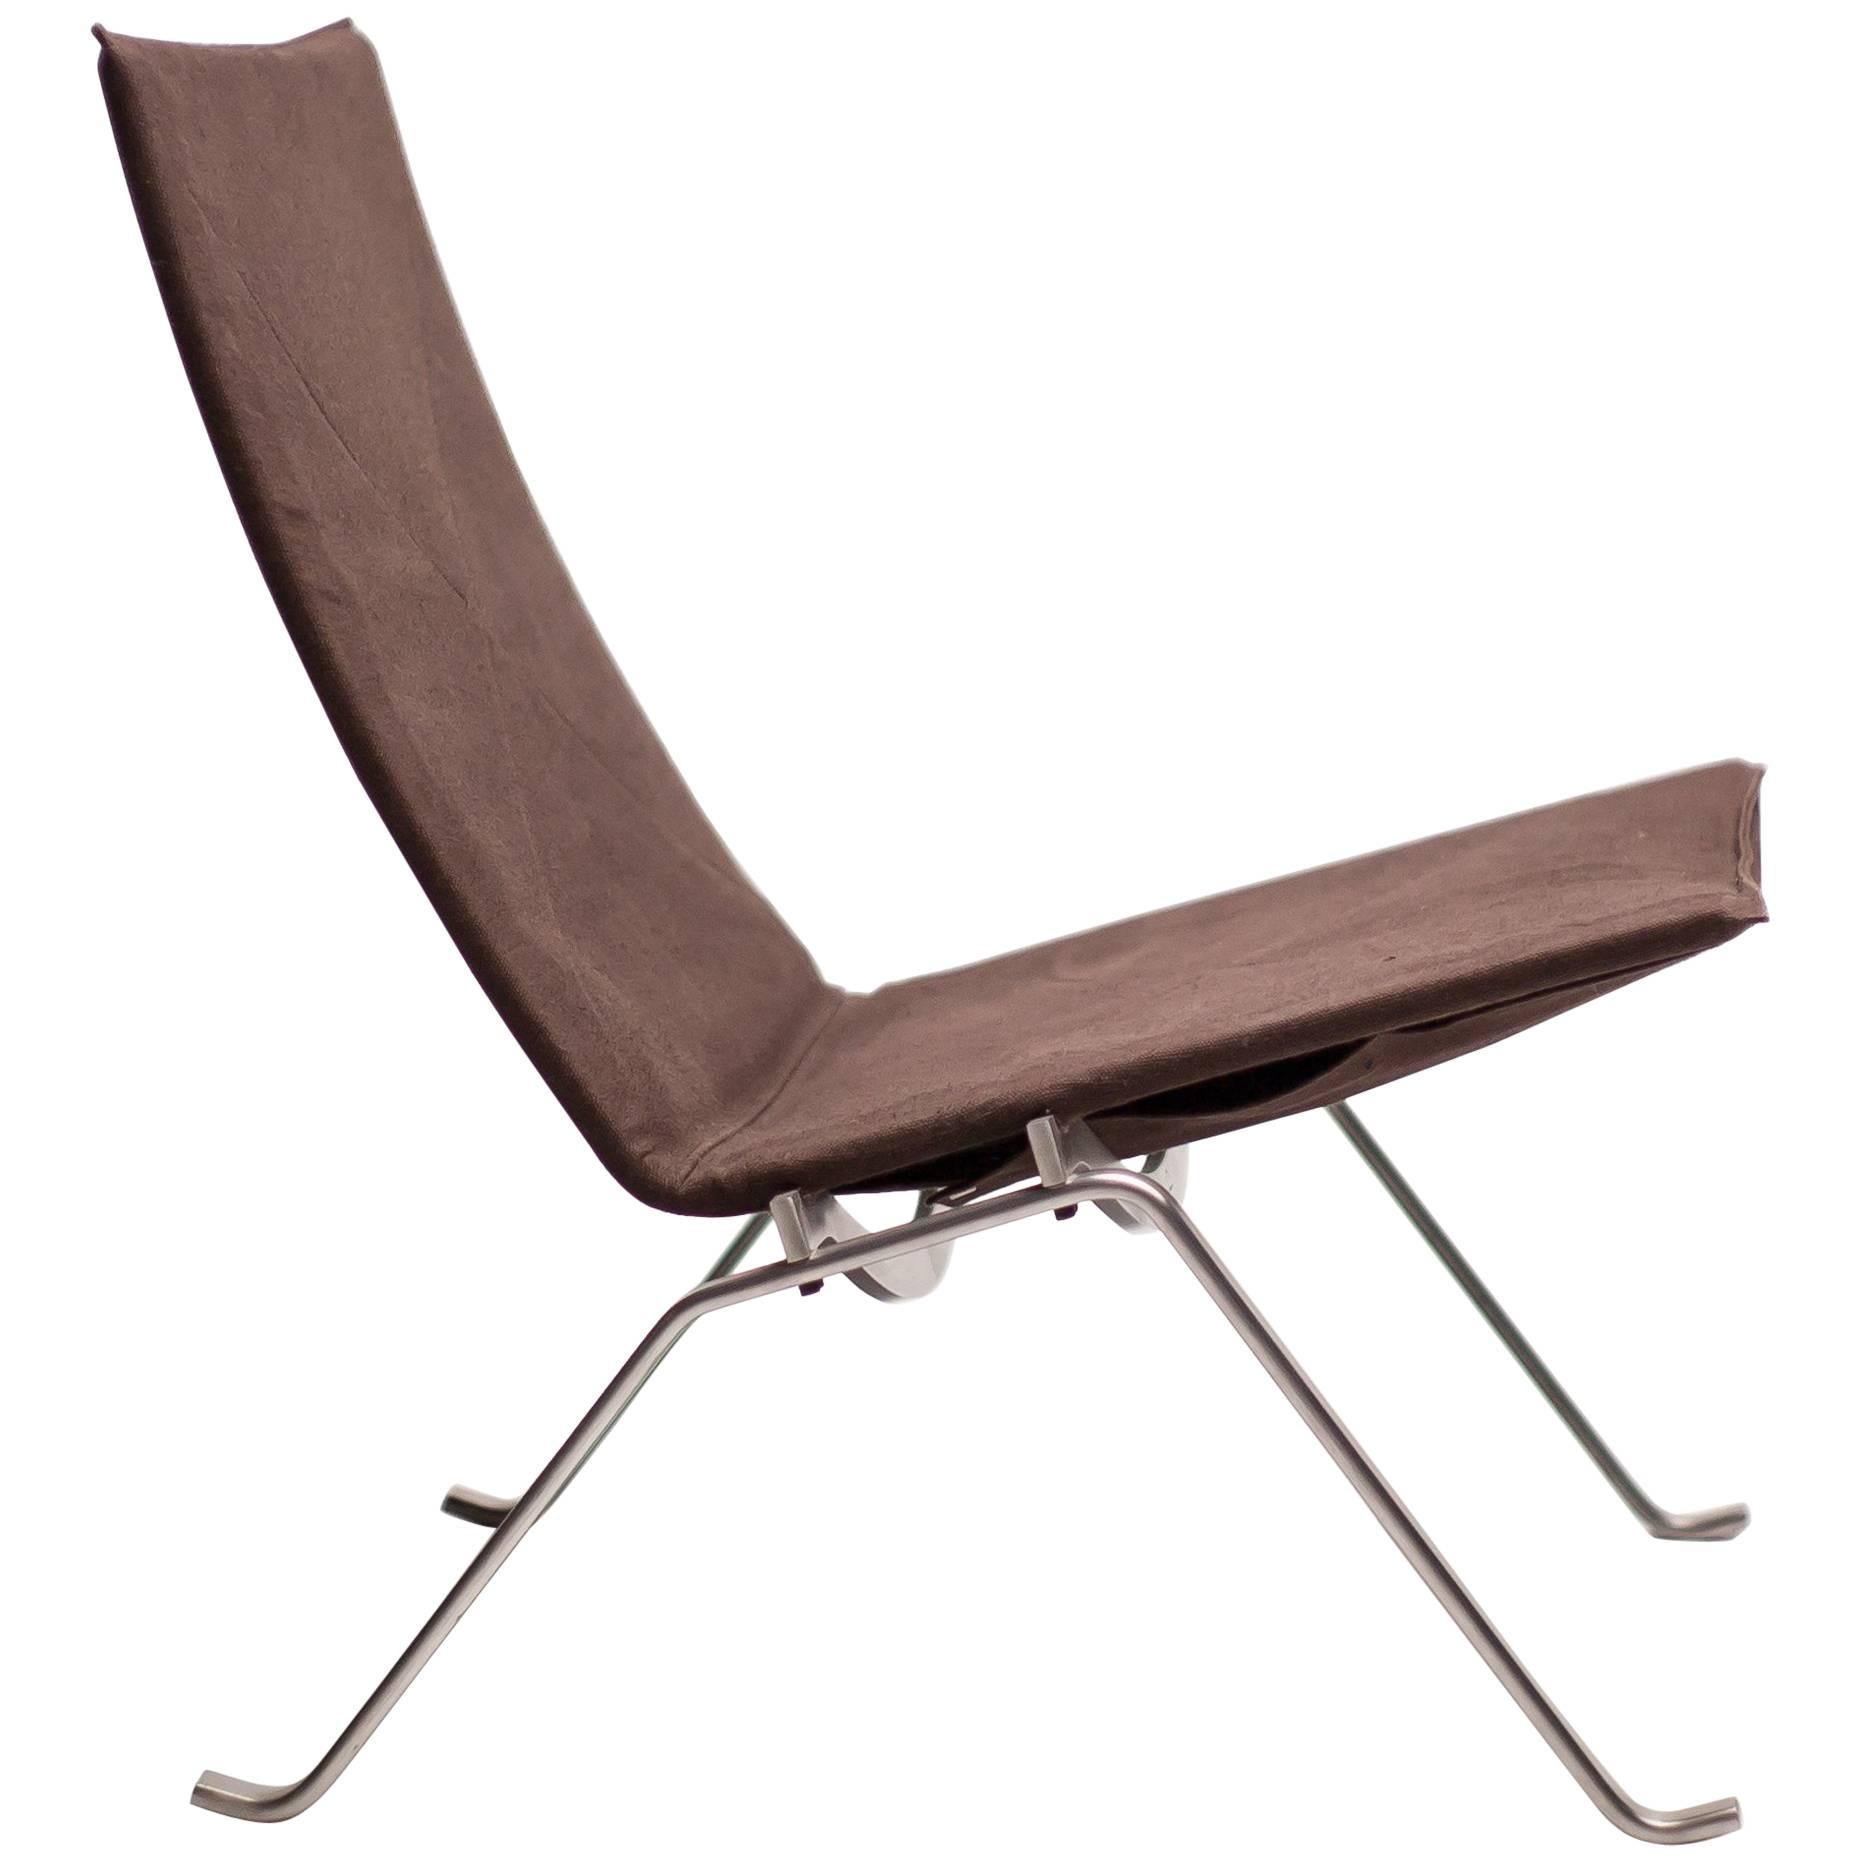 Poul Kjaerholm PK22 In Canvas For Sale